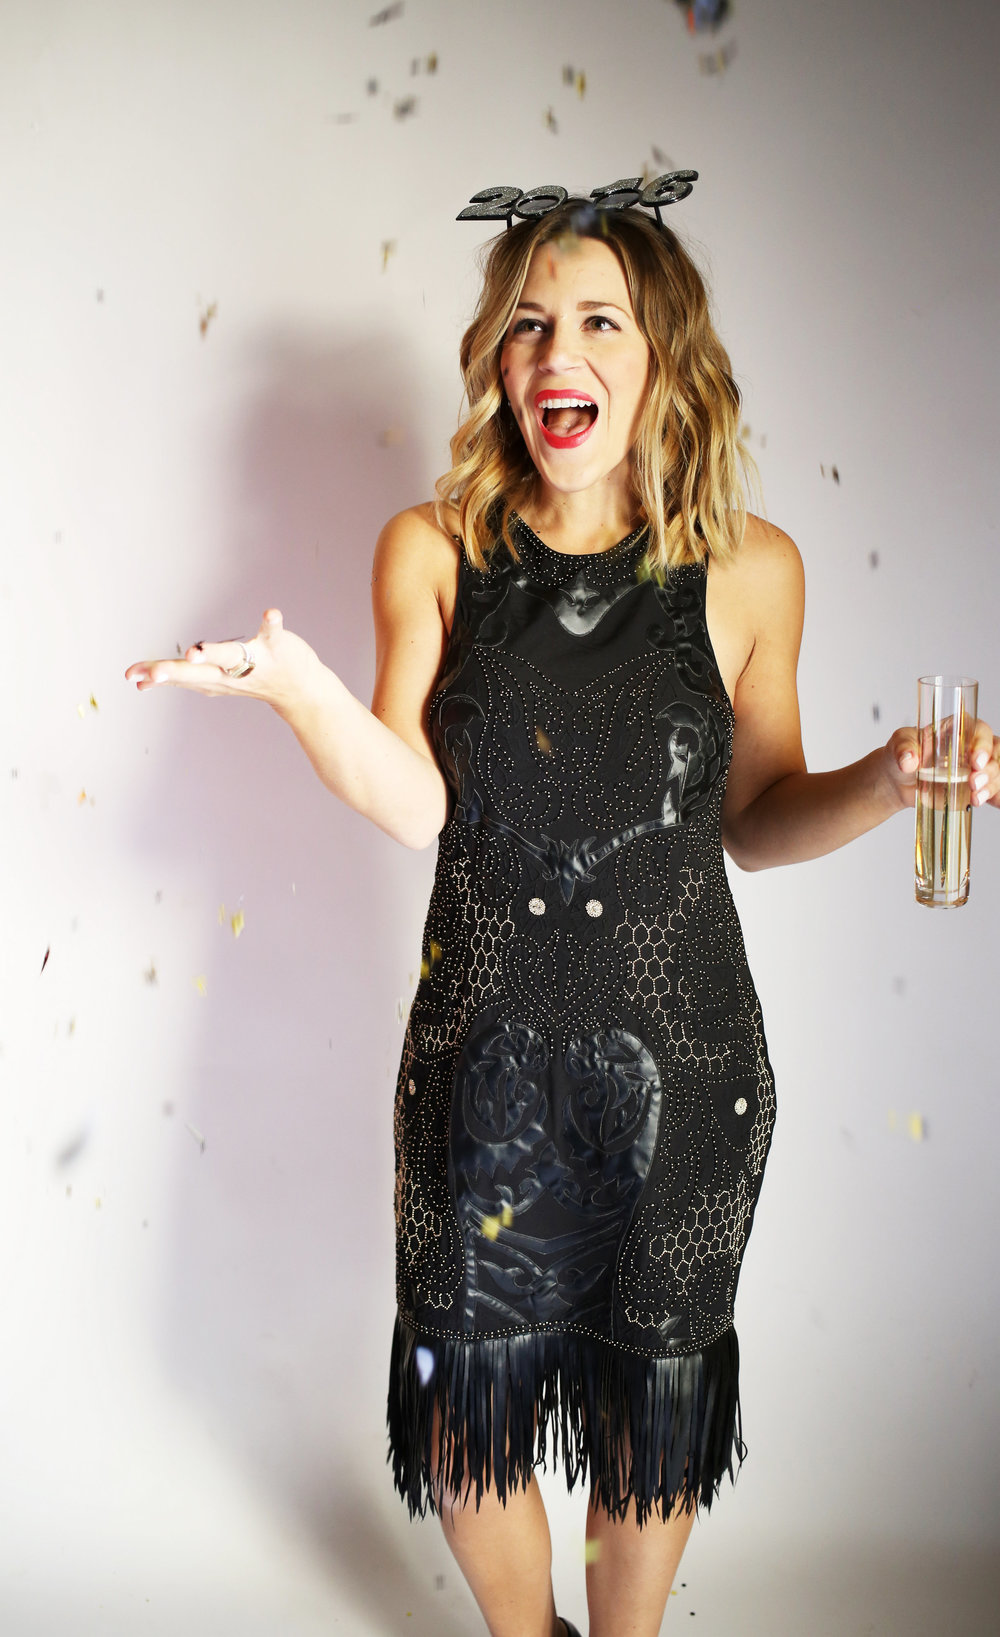 New years eve outfit by yoana baraschi 10.jpg